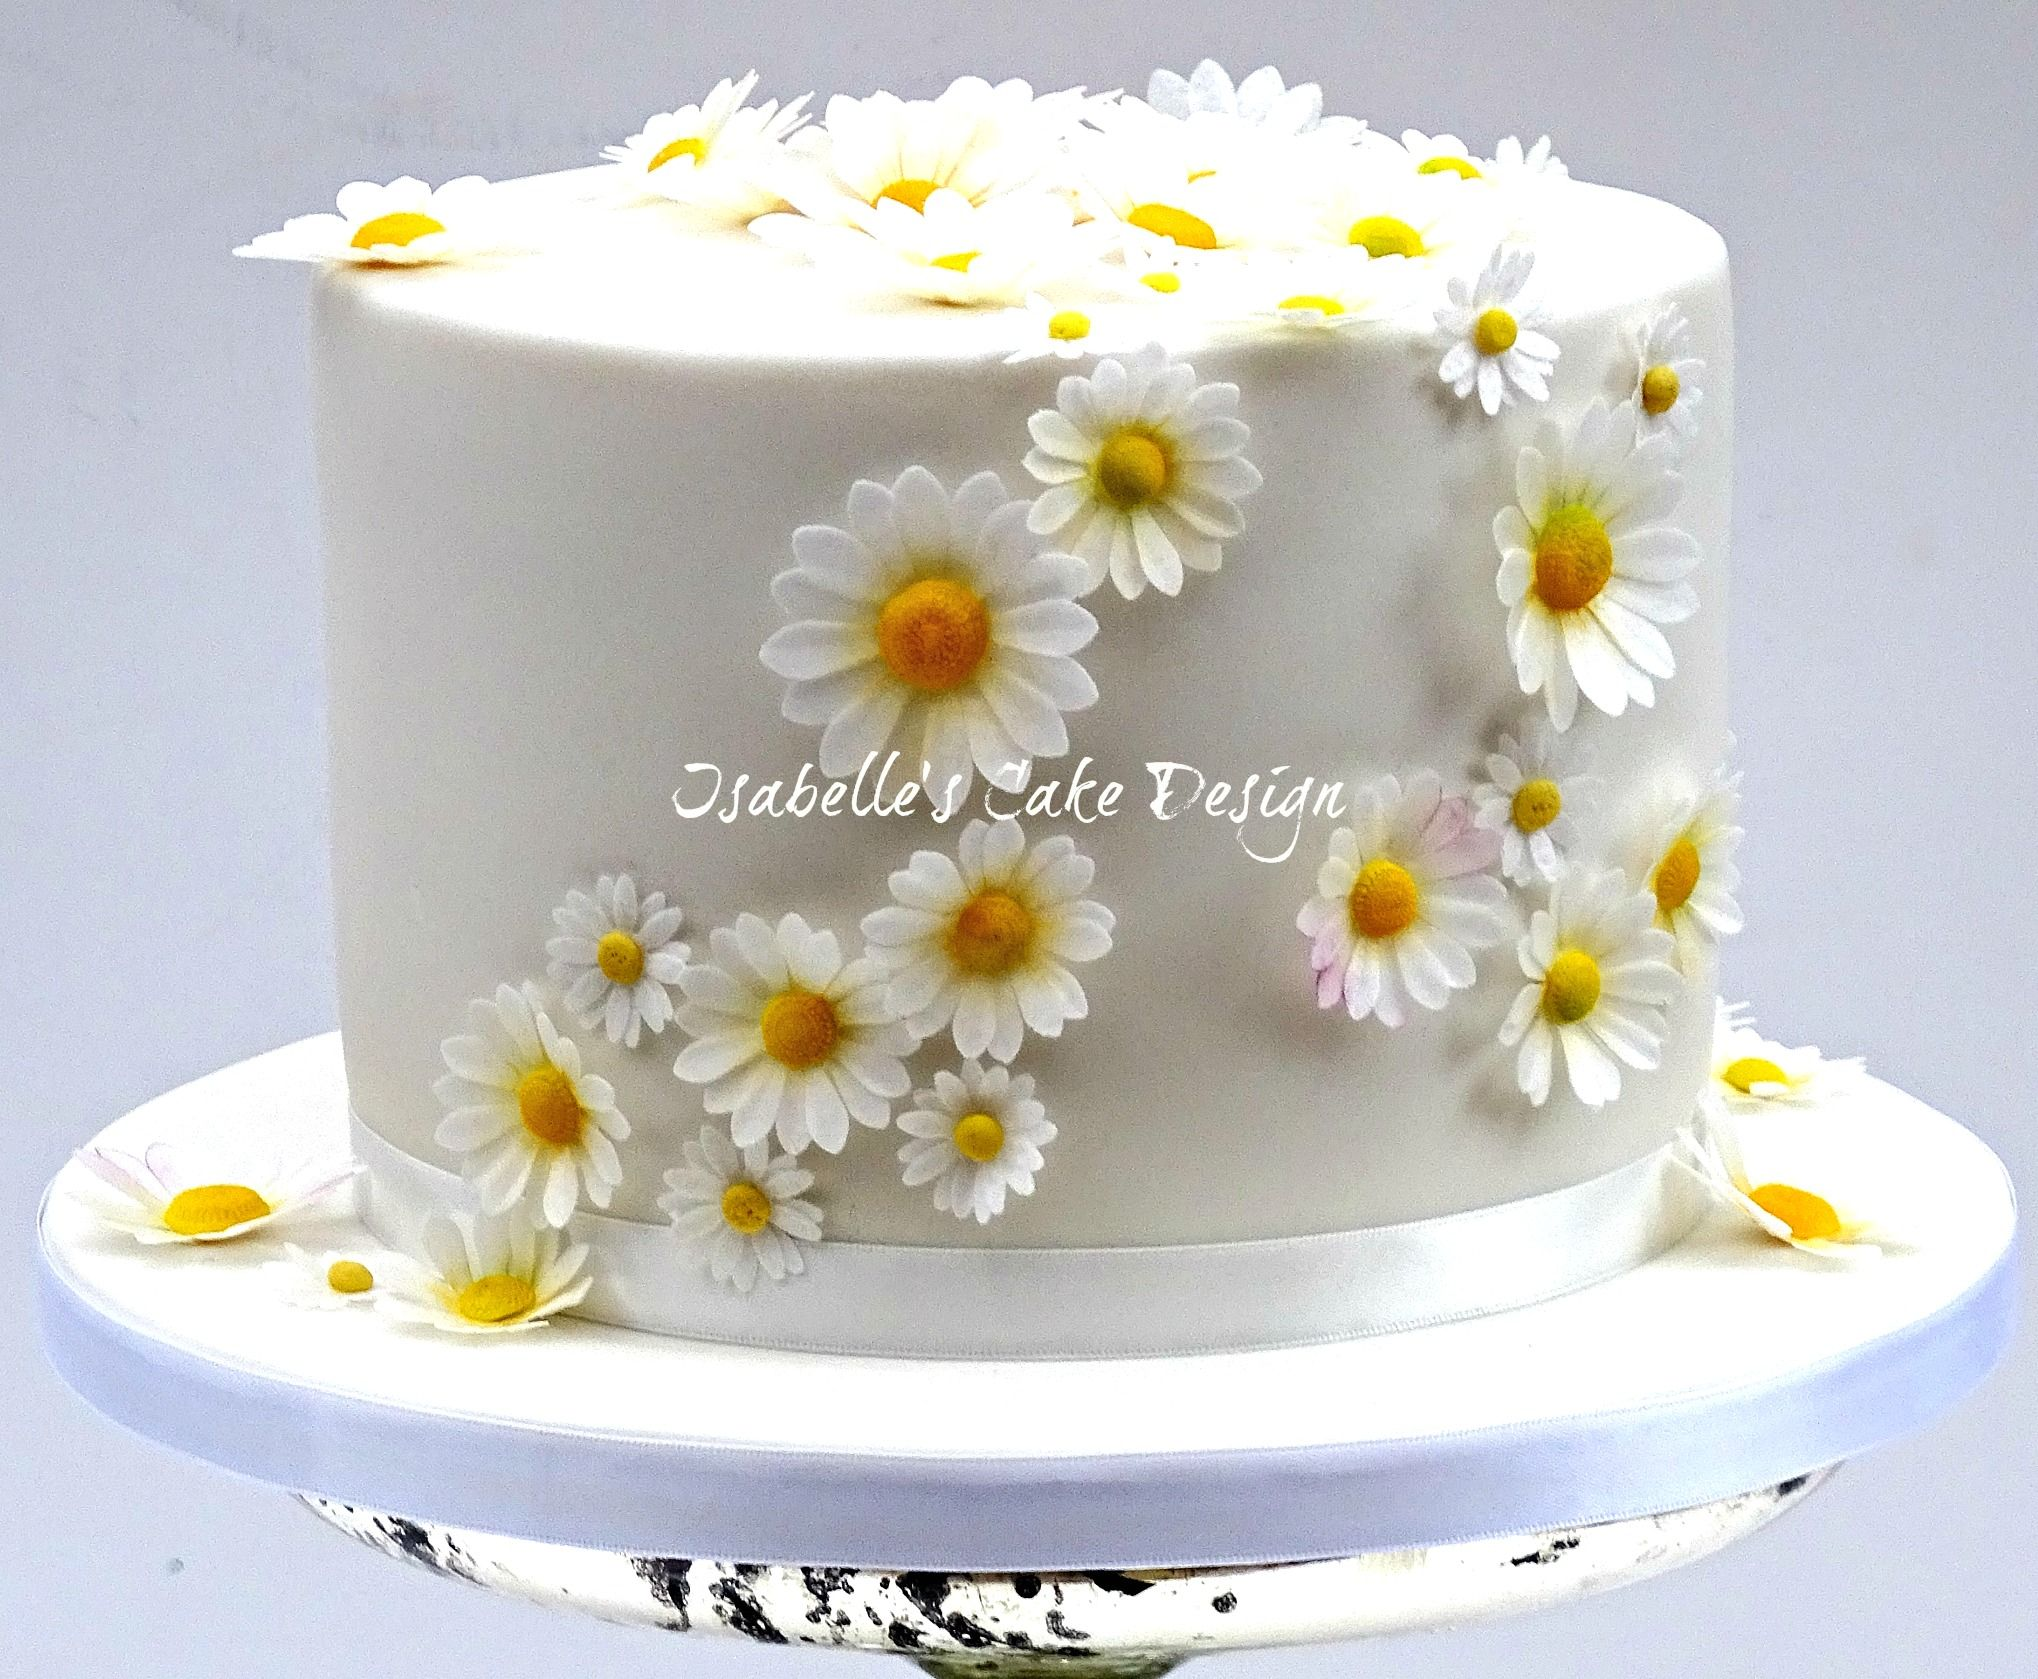 a single tier wedding cake decorated with wafer paper edible daisies